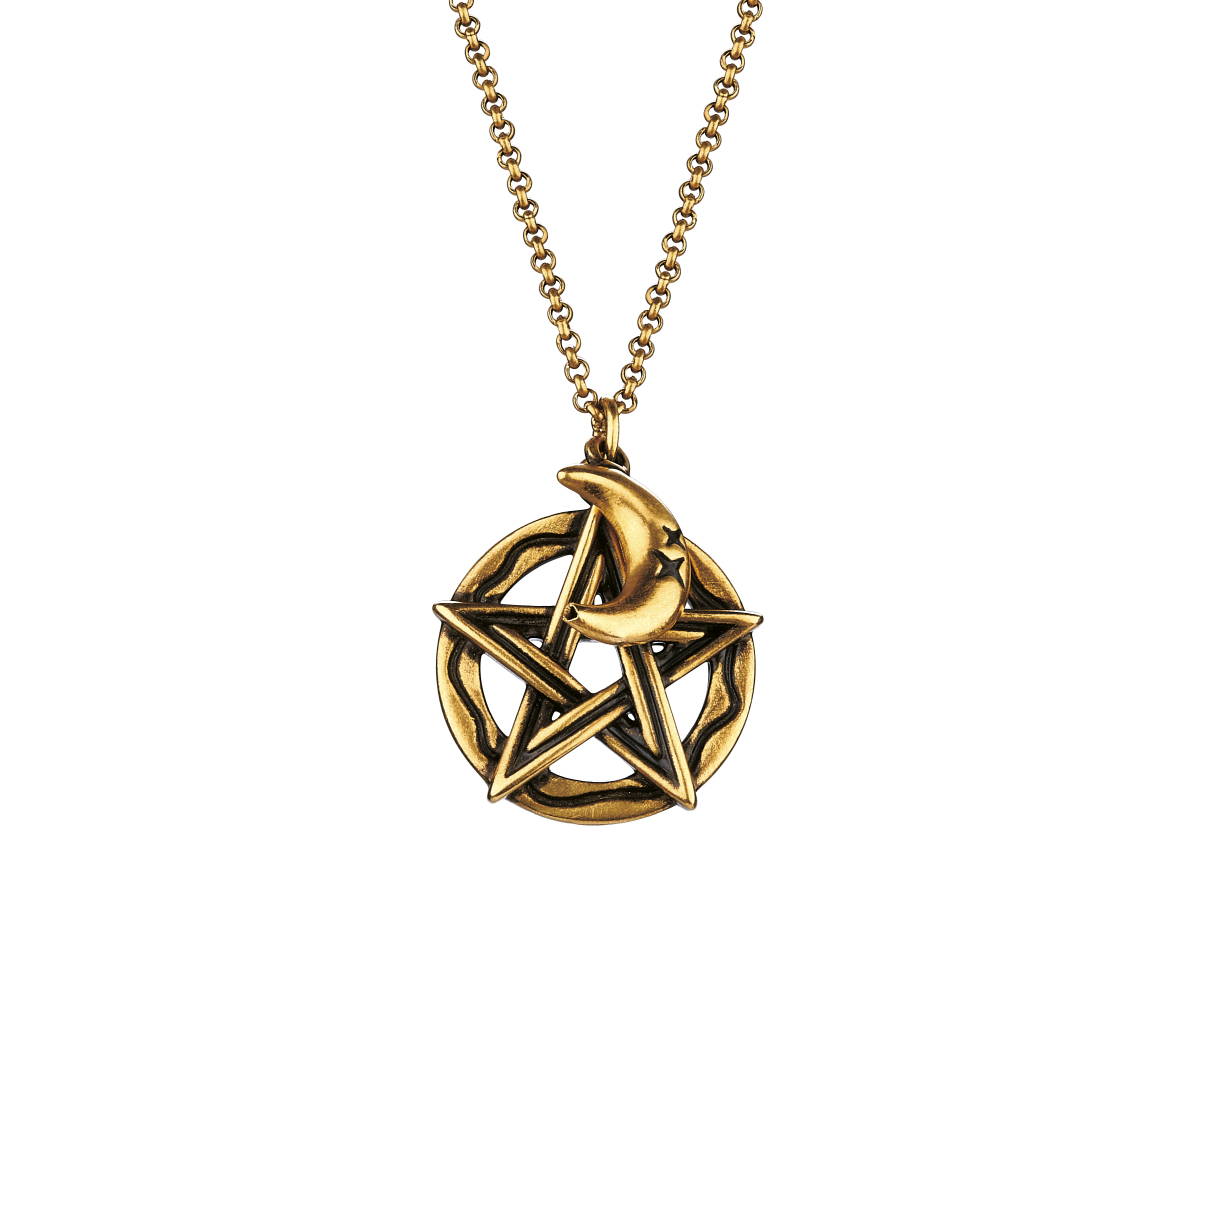 F-style Hey Cool Gold Pendant